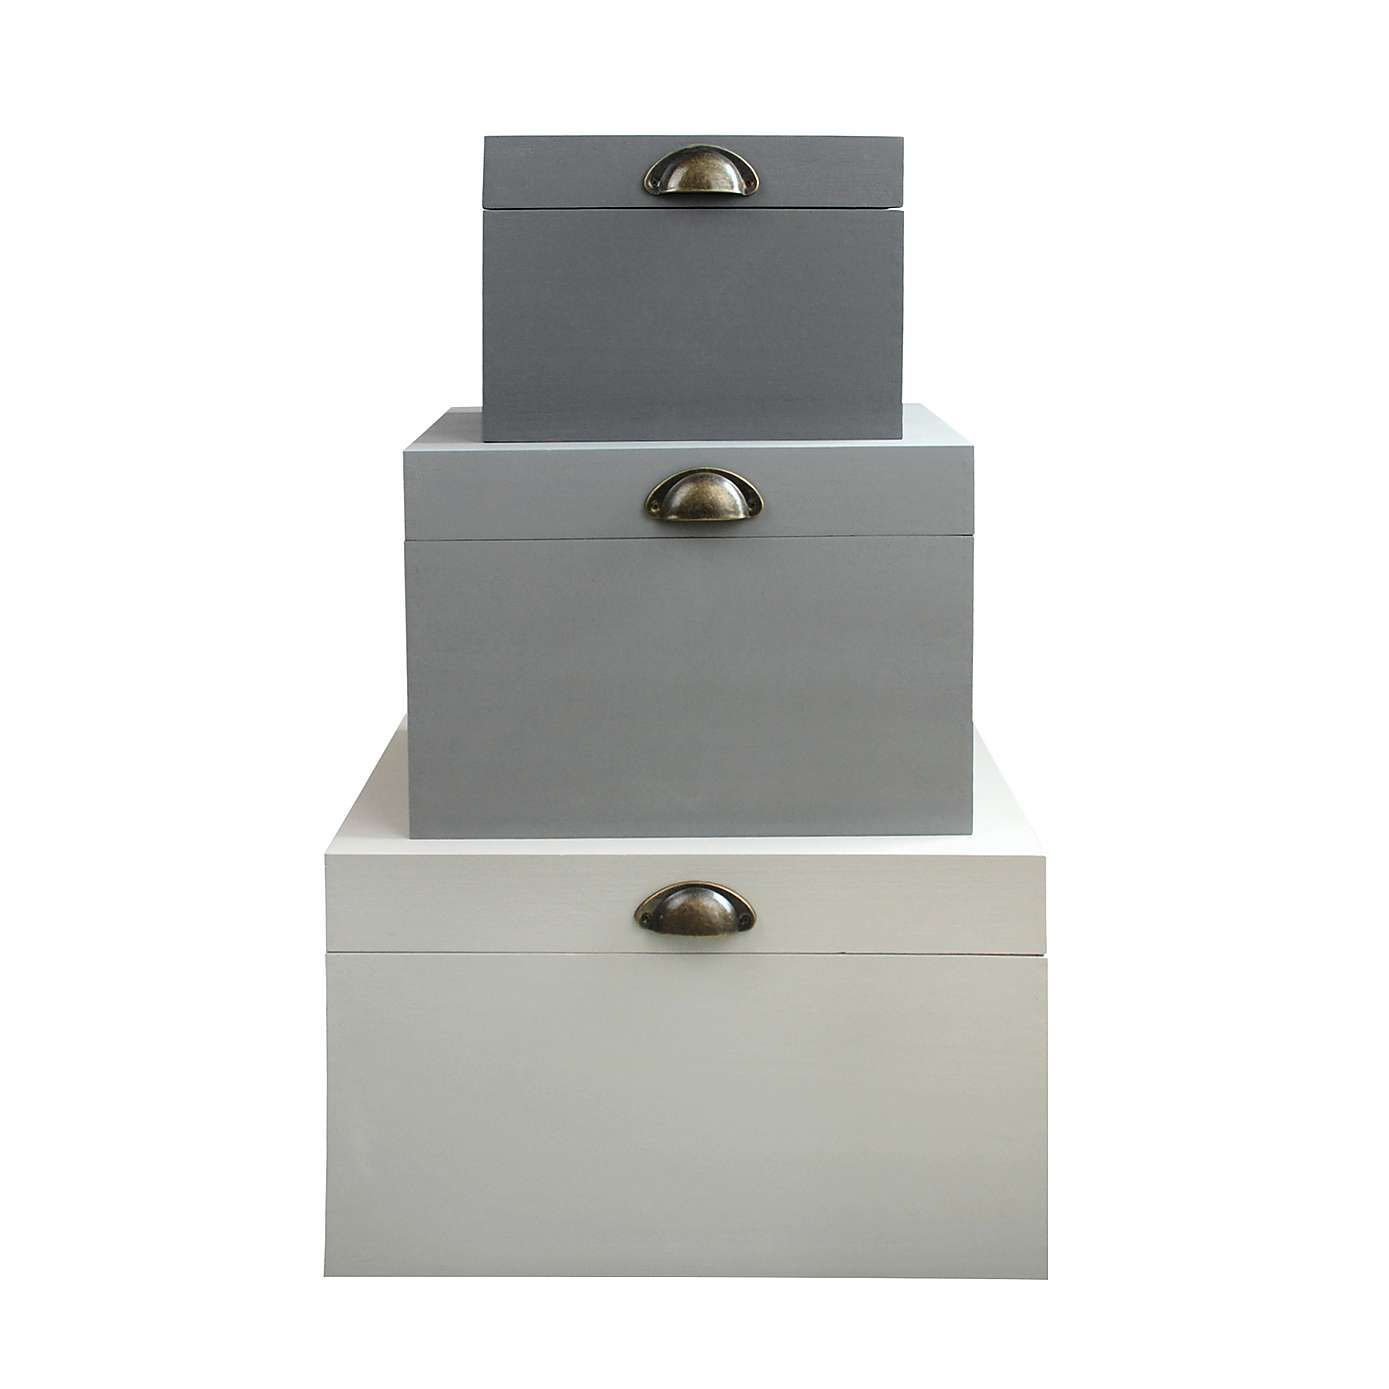 Lovely Crafted From Wood And Featuring A Distressed Bronze Handle, Our Modern Grey  Storage Trunk Is Available In A Choice Of Three Sizes.